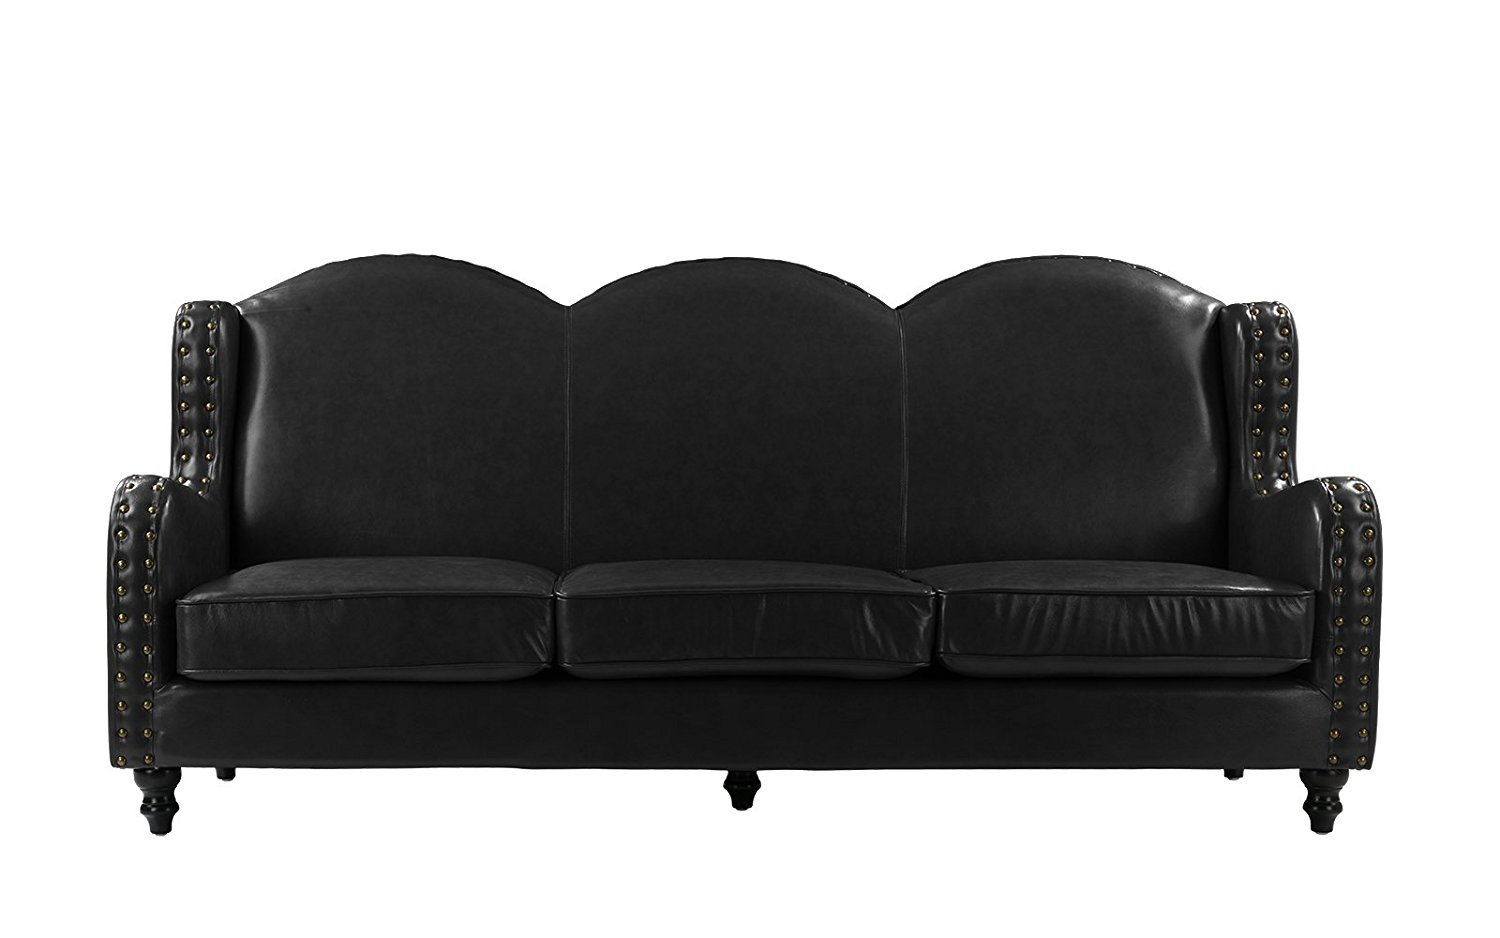 Details about Black Leather Sofa 3 Seater, Living Room Couch, Loveseat for  3 Nailhead Trim